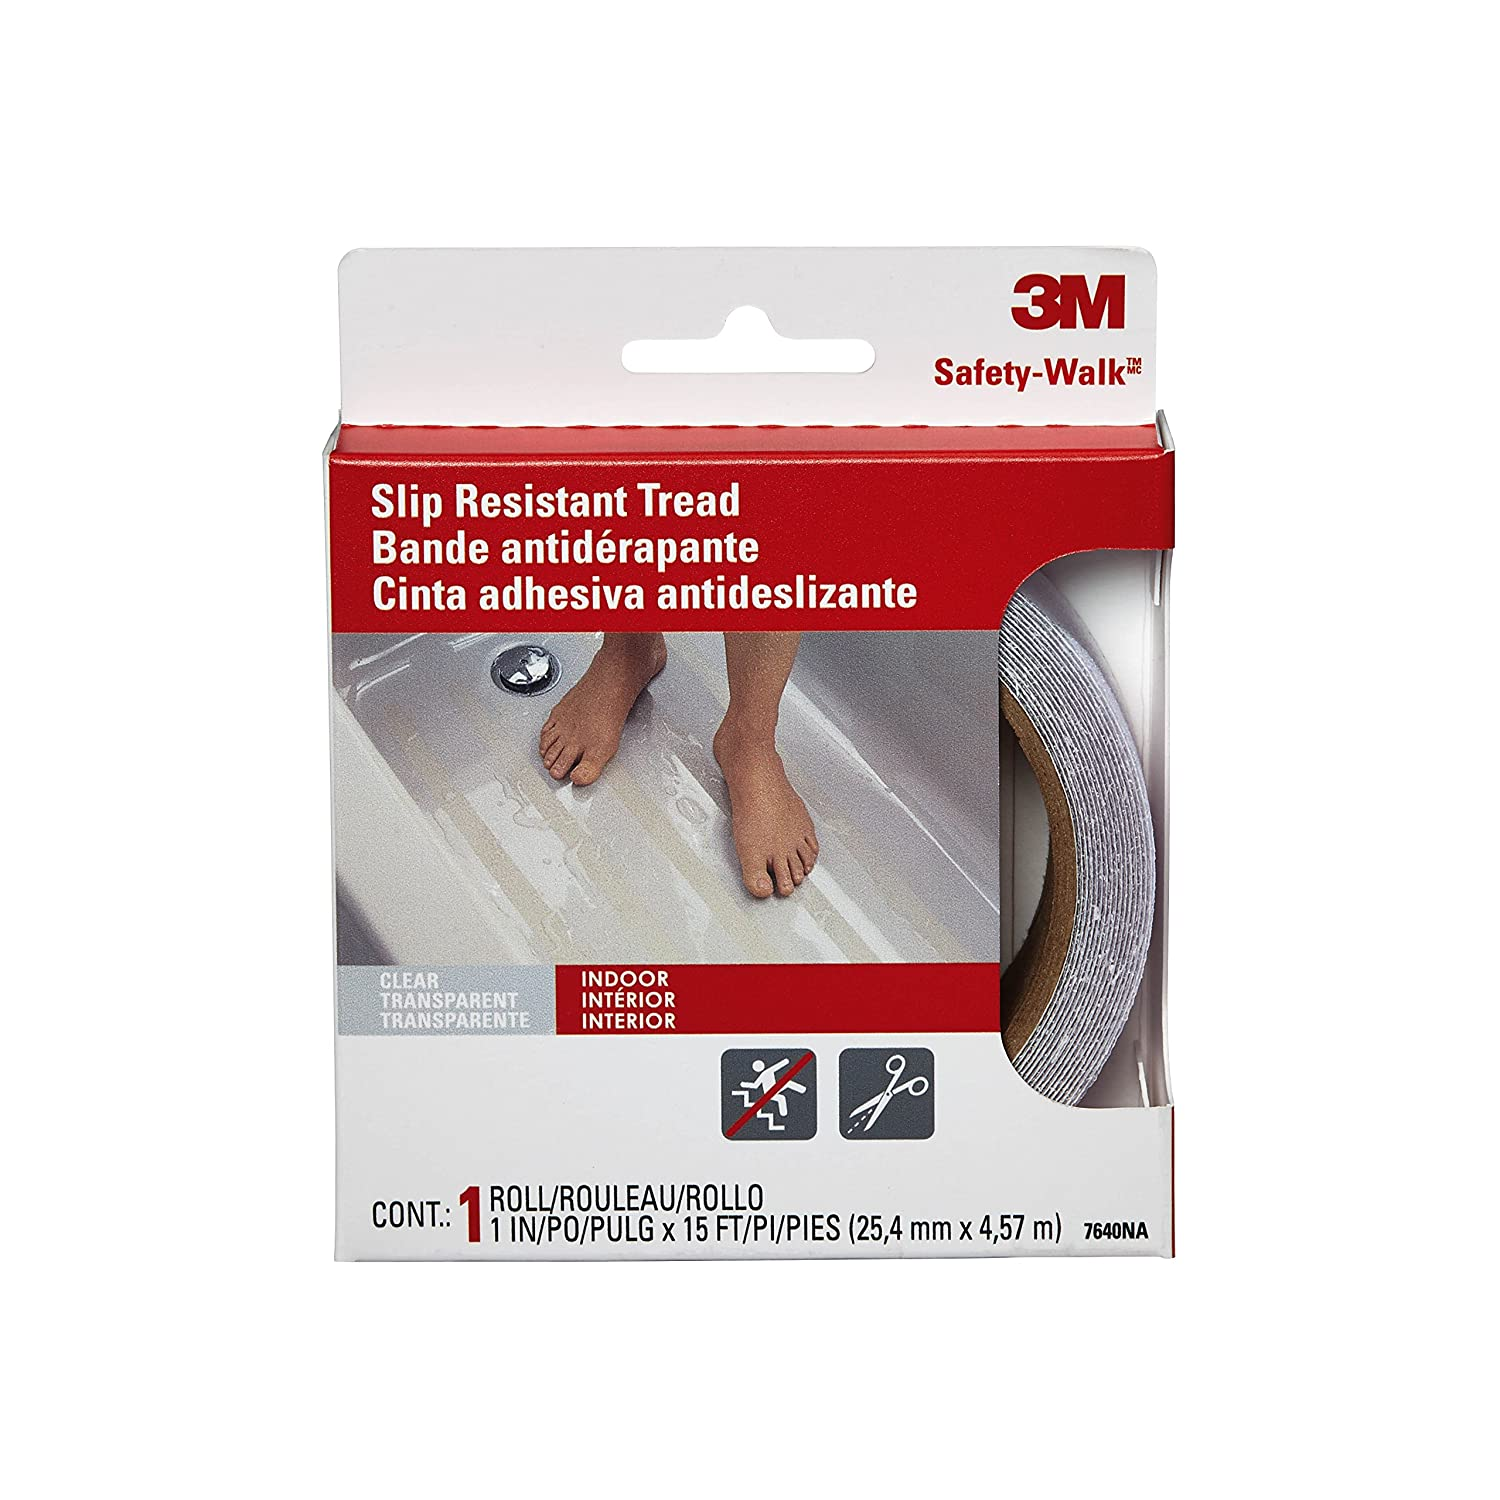 Best 3M Anti Slip Tape - Get Your Home